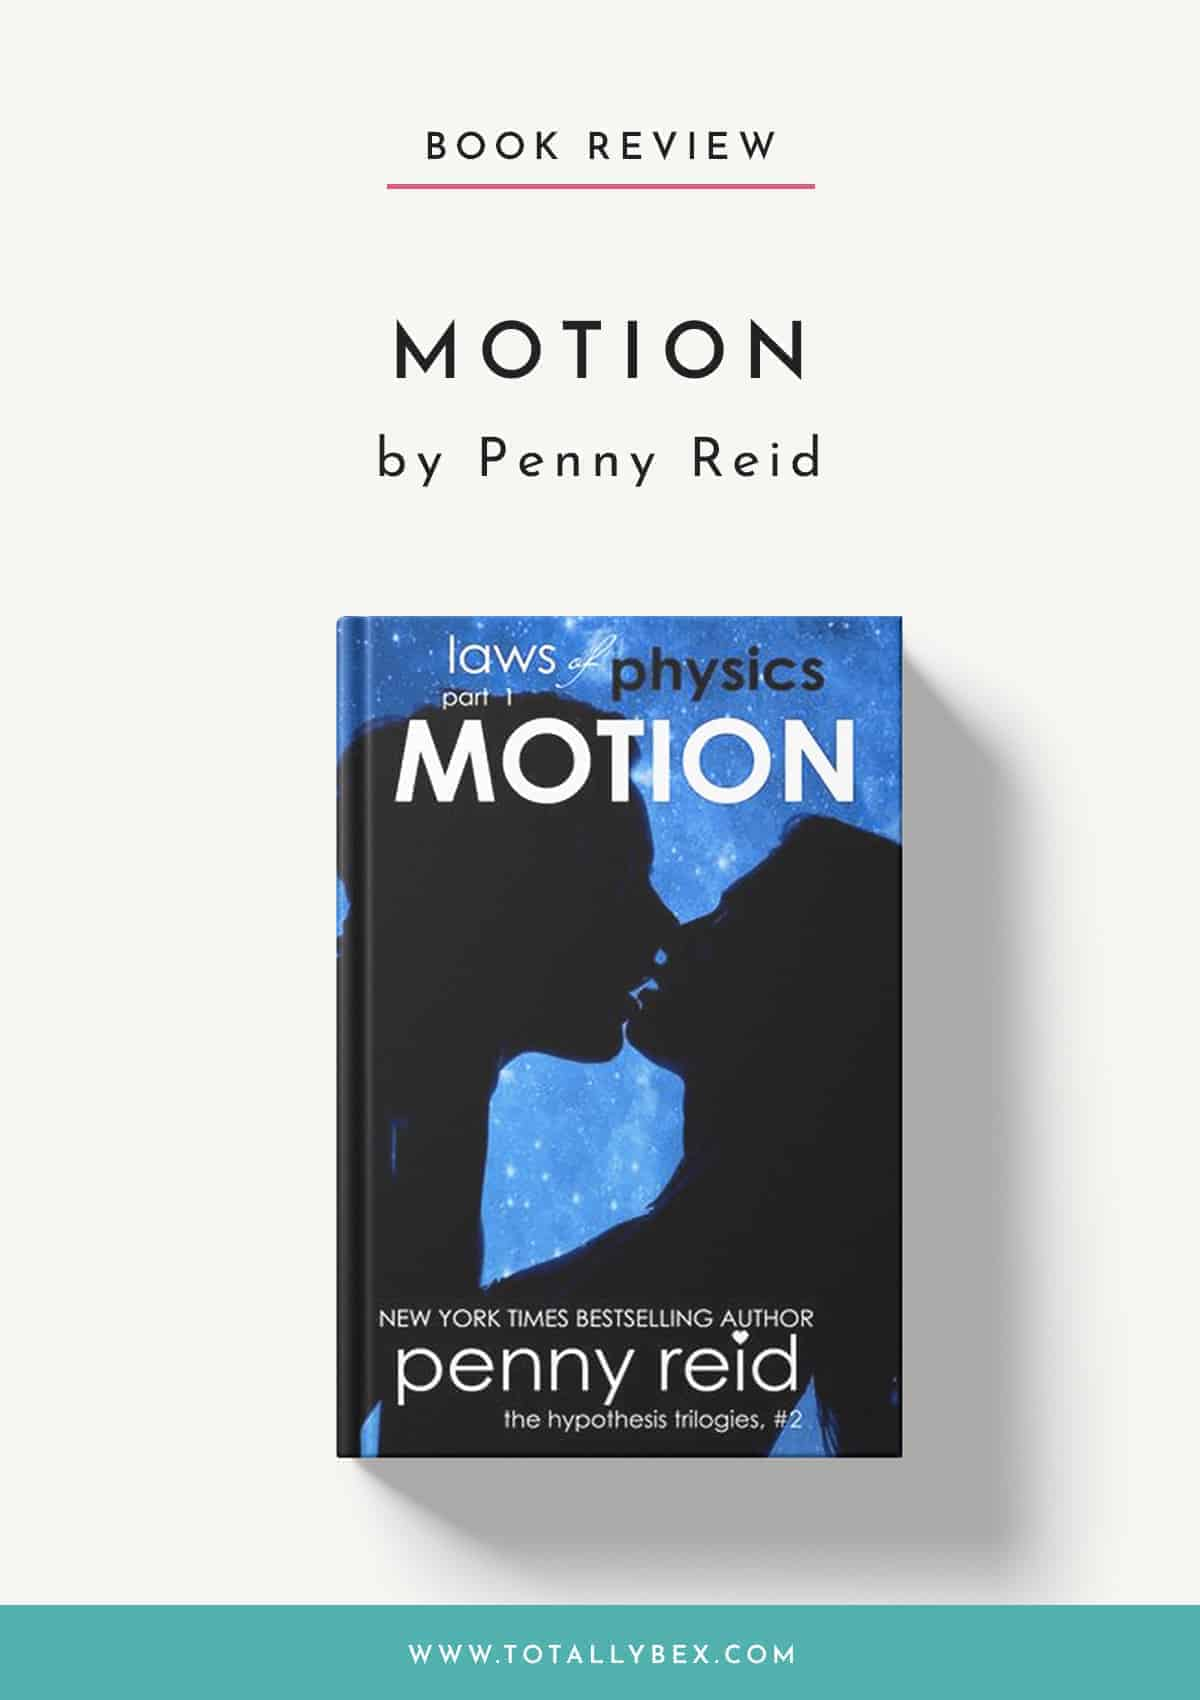 Motion by Penny Reid-Book Review